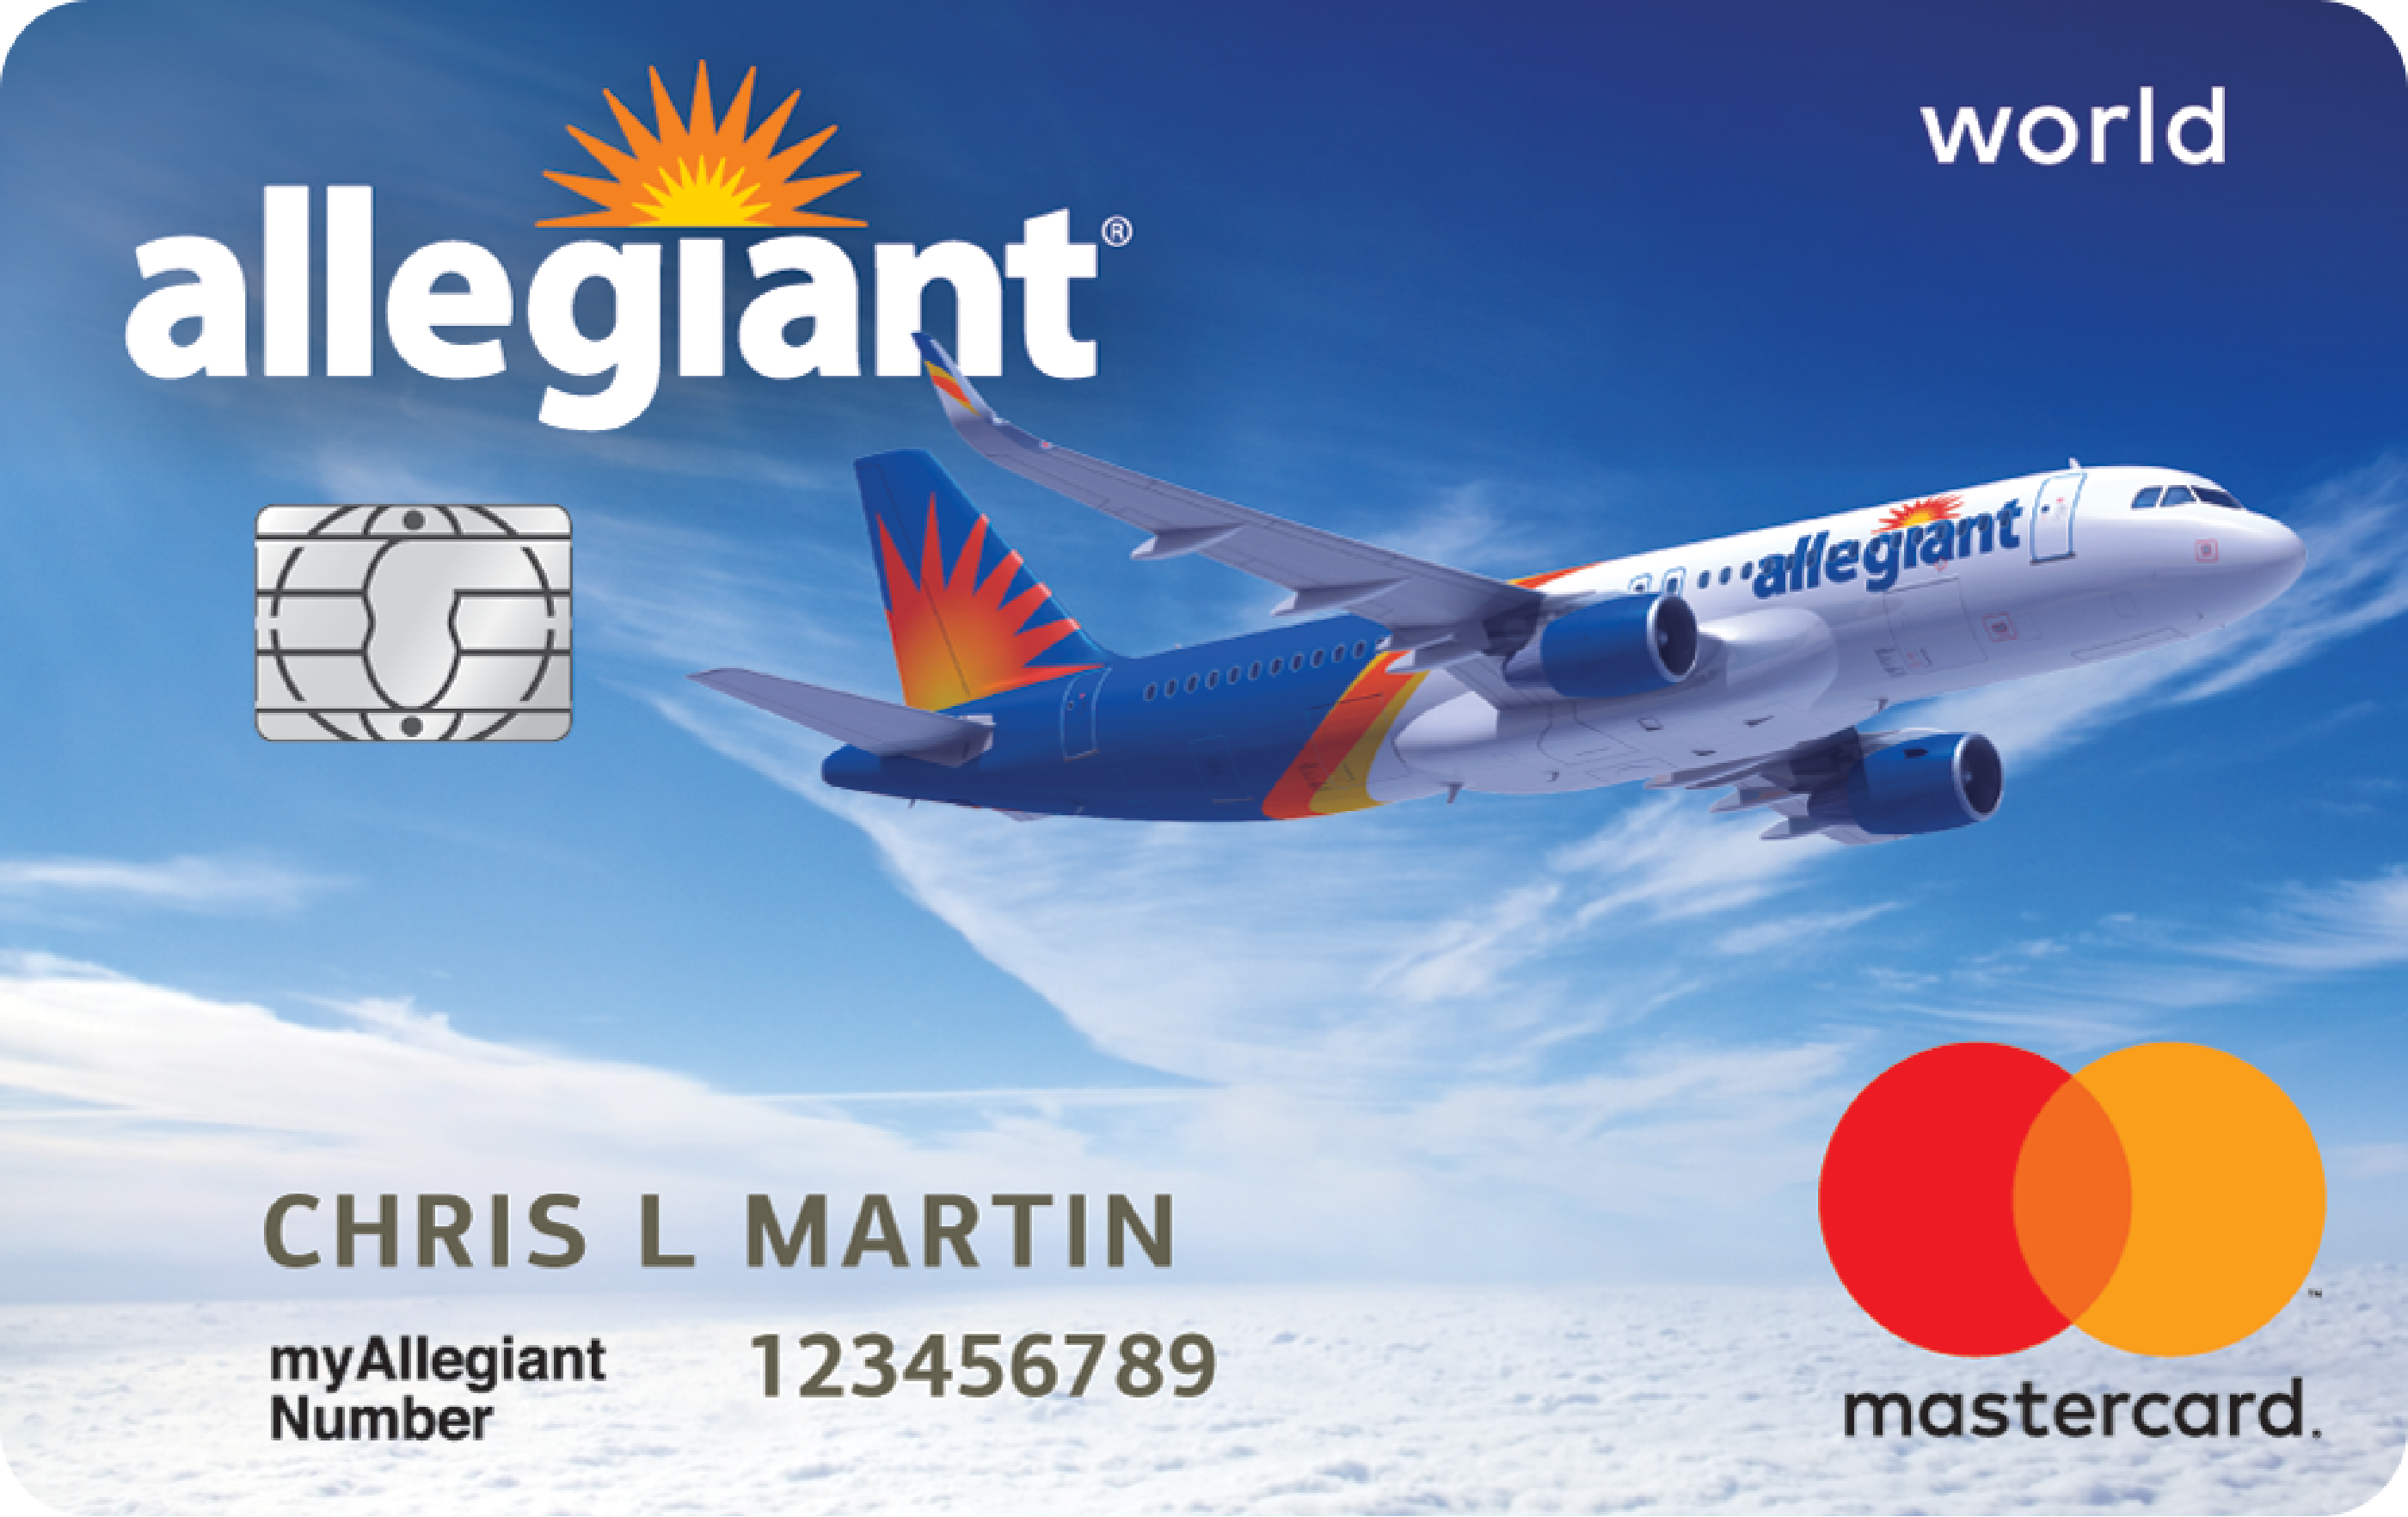 Allegiant's Bank of America loyalty card